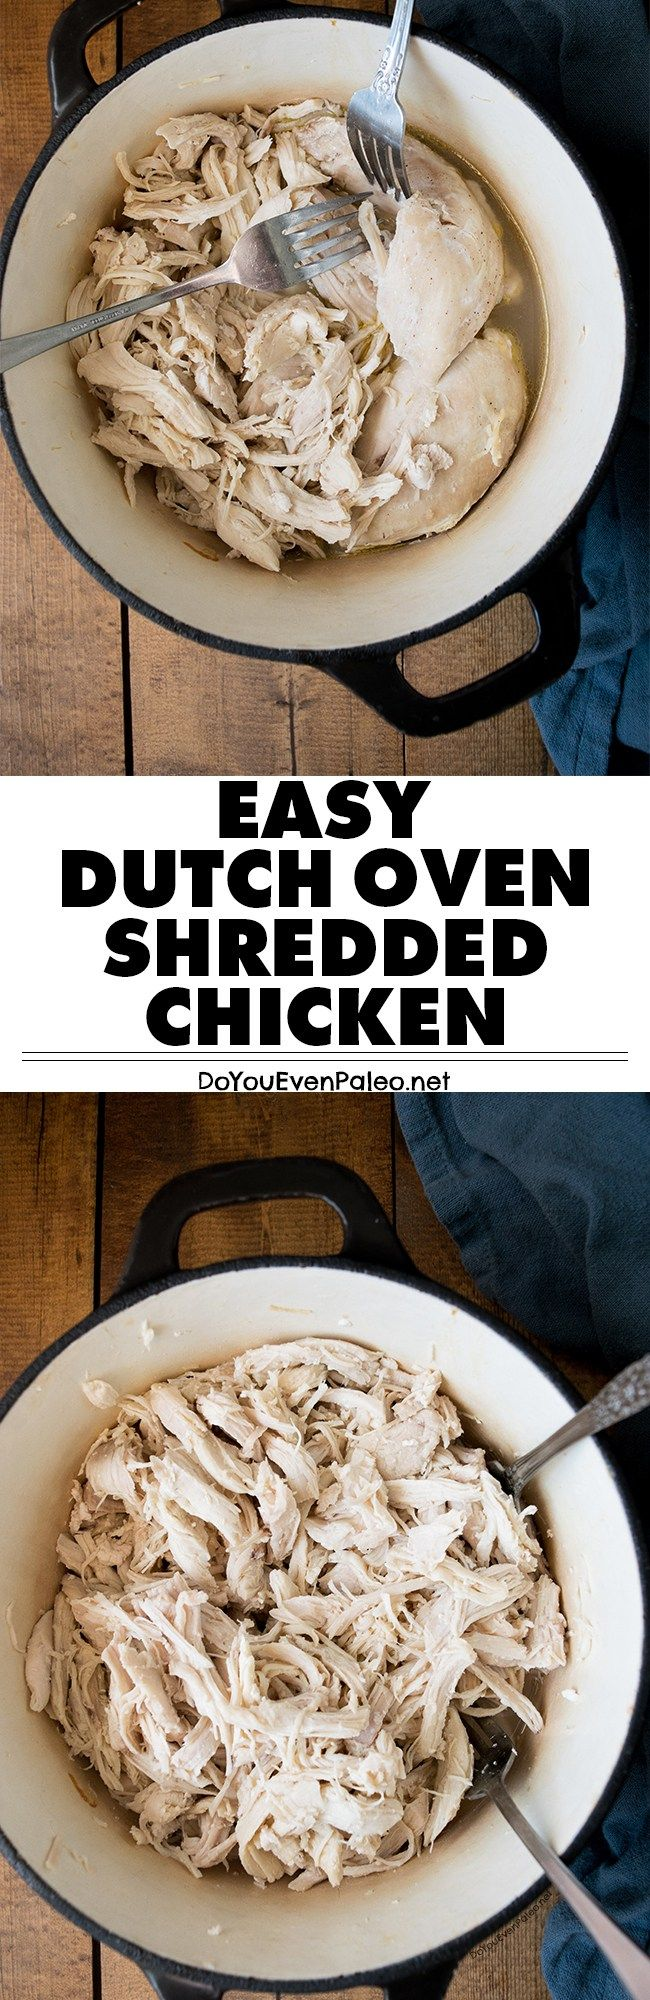 Need plain shredded chicken for a recipe? Make it quick with this plain dutch oven shredded chicken. Ready in about 30 minutes! | DoYouEvenPaleo.net